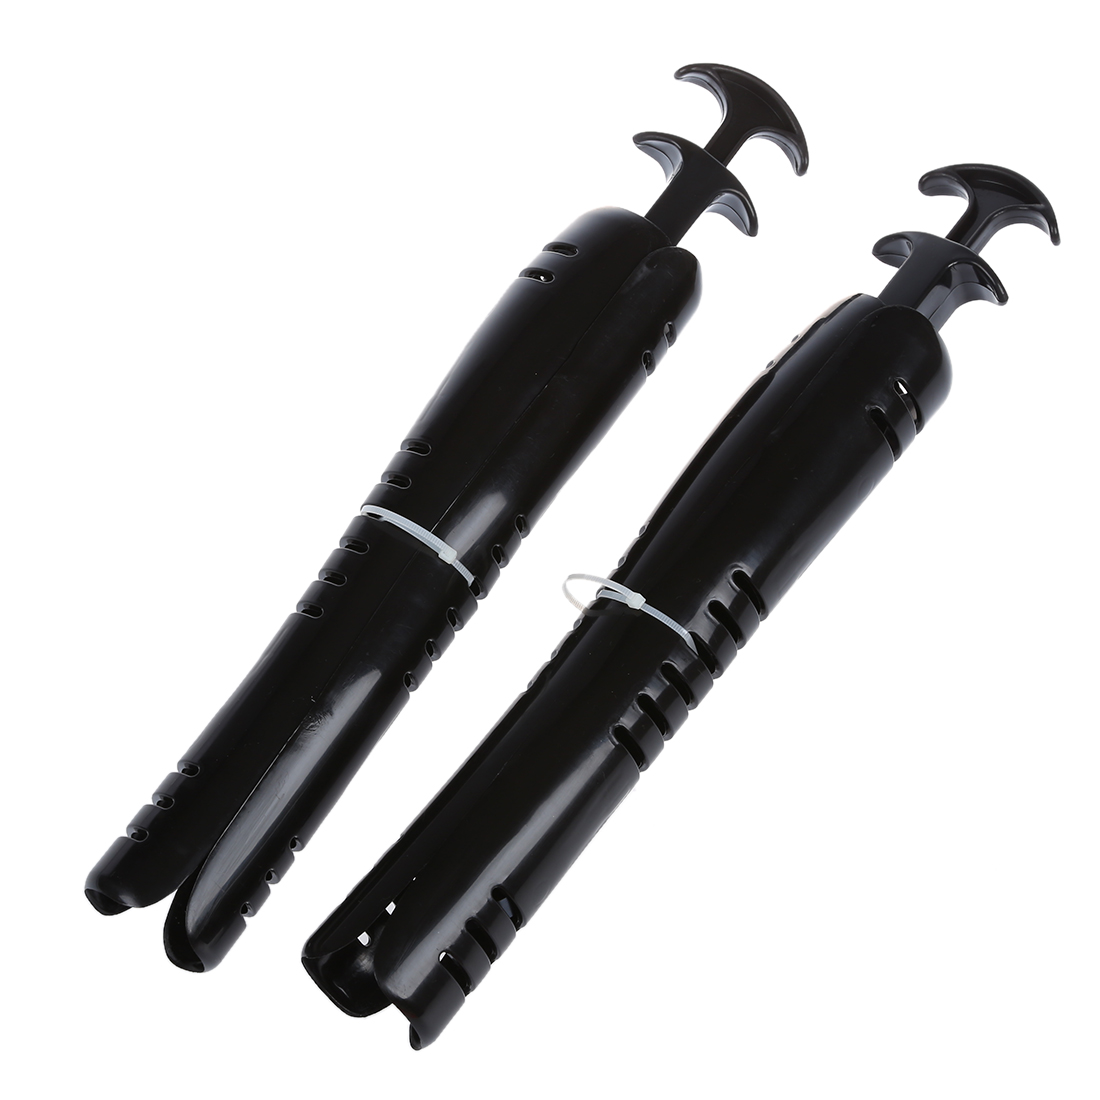 1 PAIR 12 1/2 Inch Boot Stretcher Shaper / Shoe Tree With Handle--Black 5pcs 1 pair 12 inch white film inflatable boot stretcher shaper shoe tree